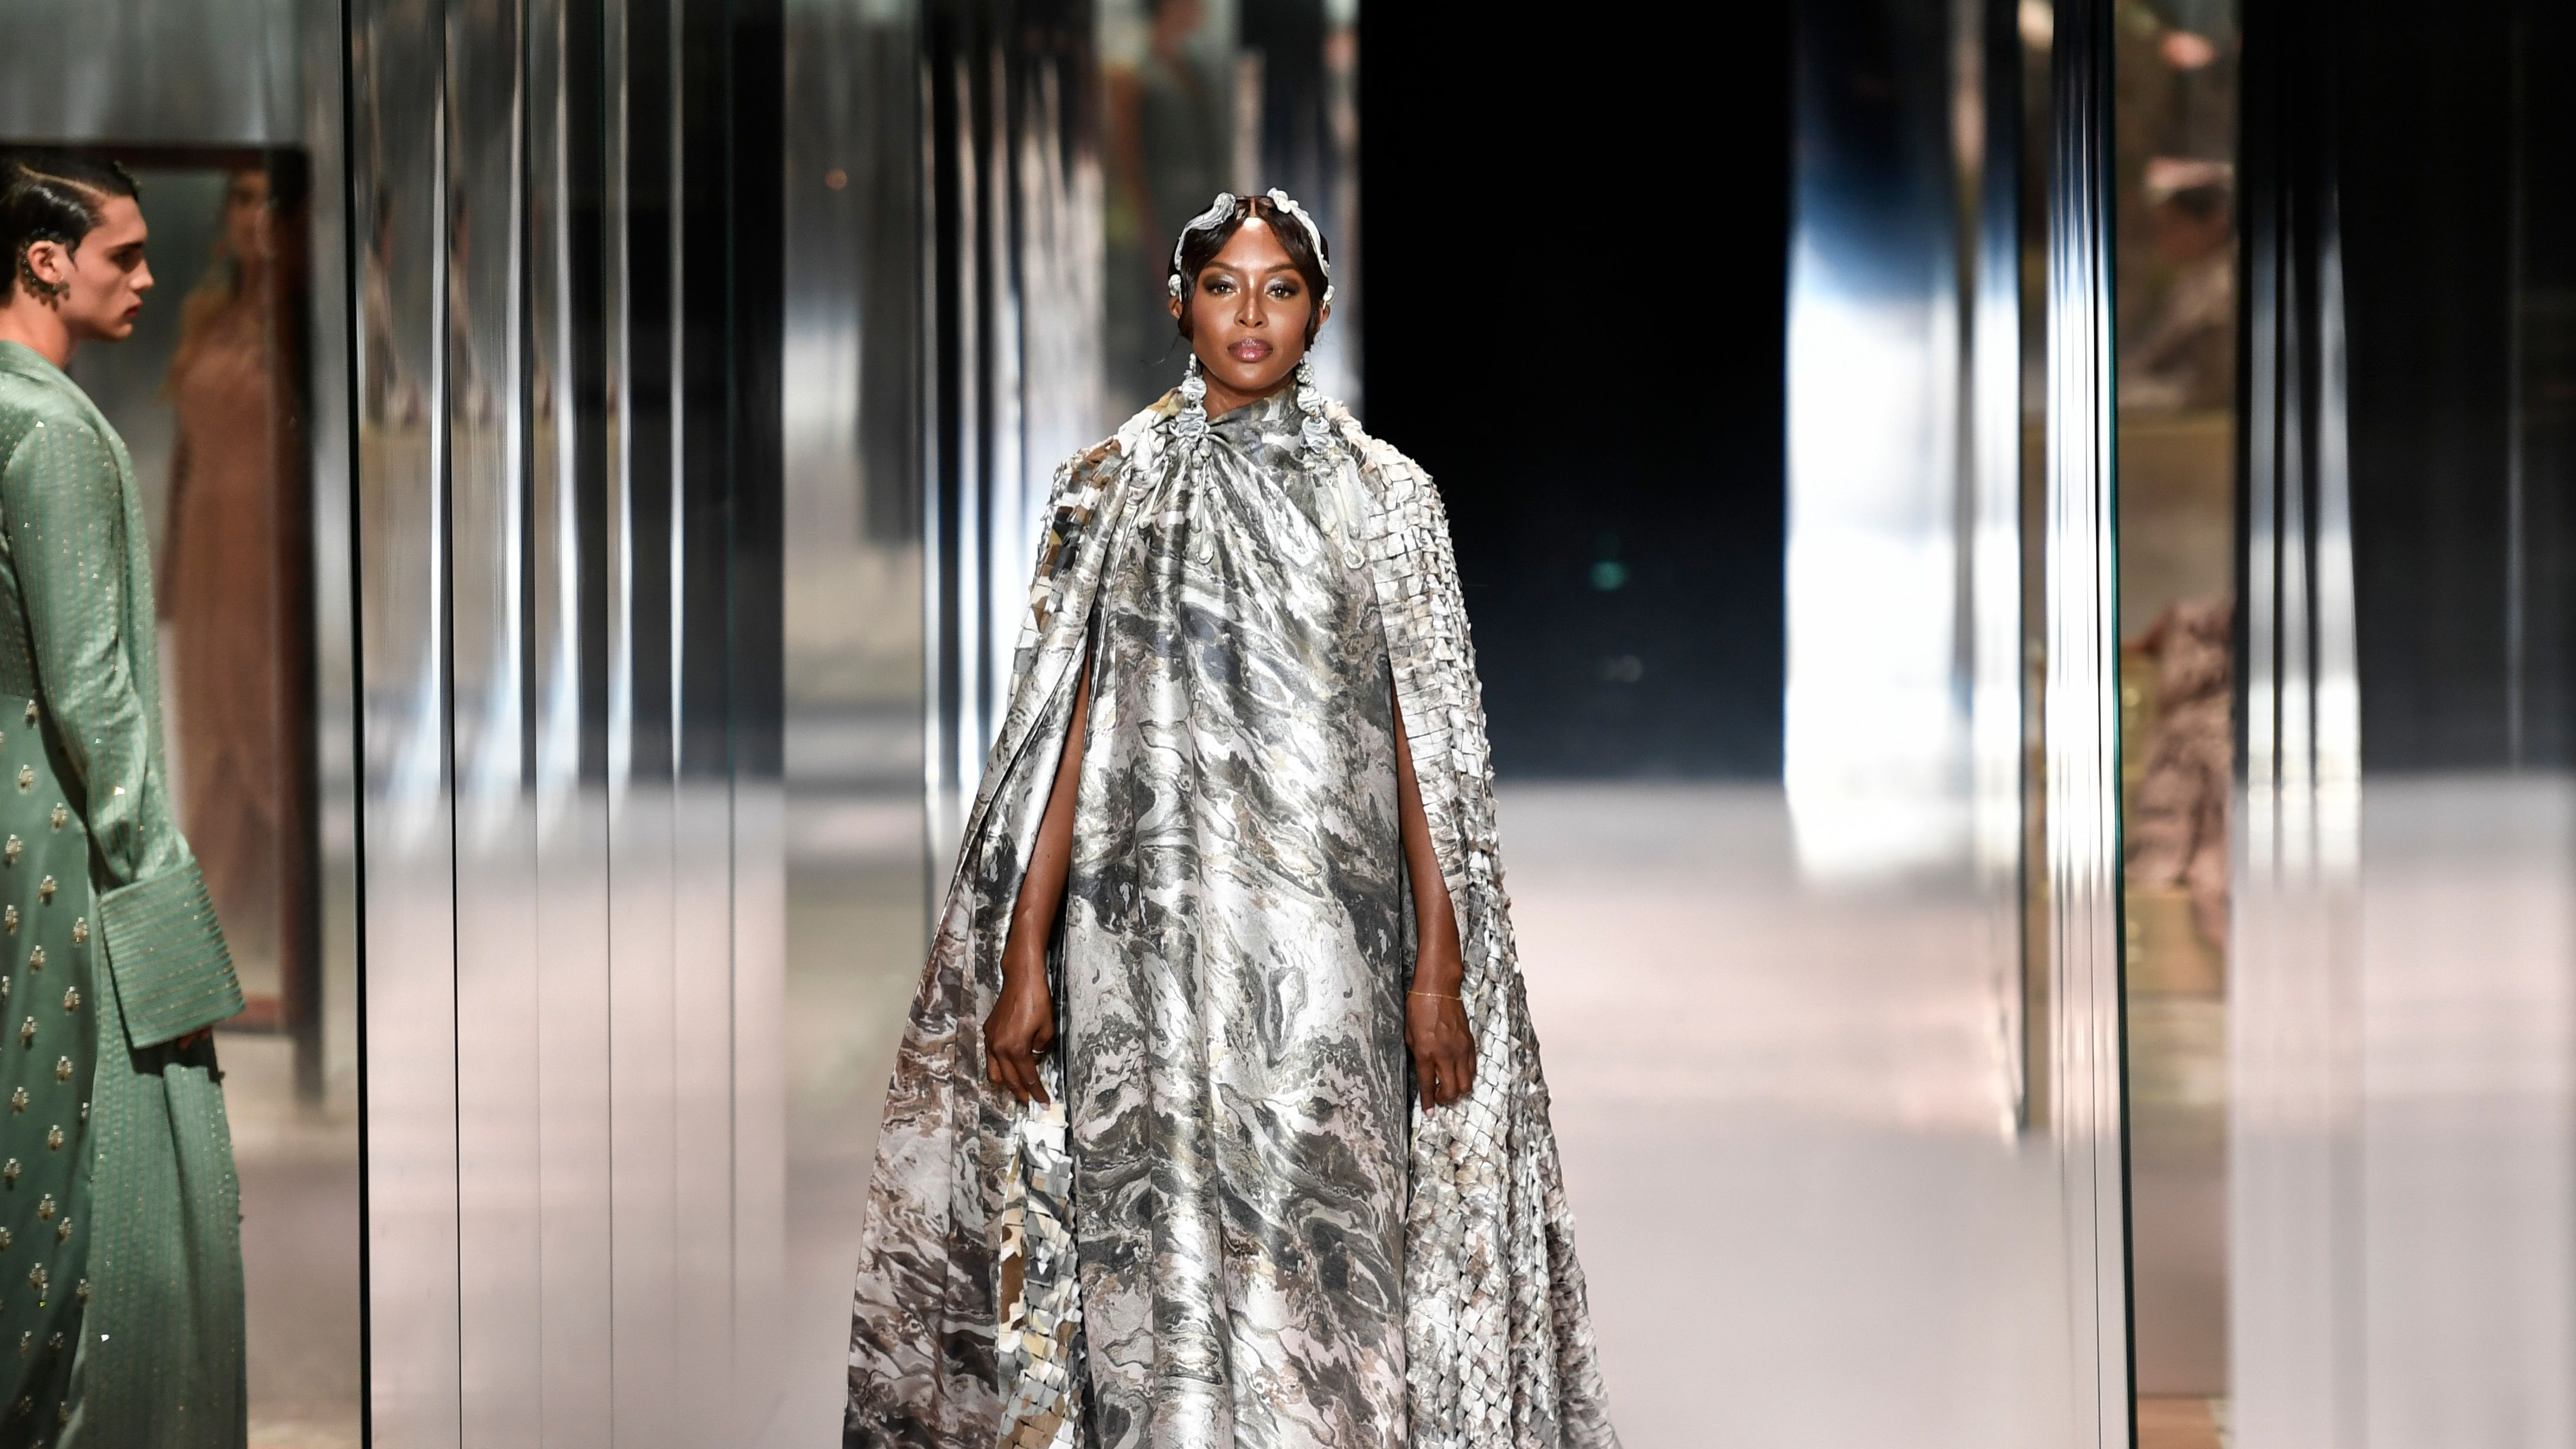 Kim Jones Kicks Off His Fendi Tenure With A Bold, Star-Studded Couture Offering